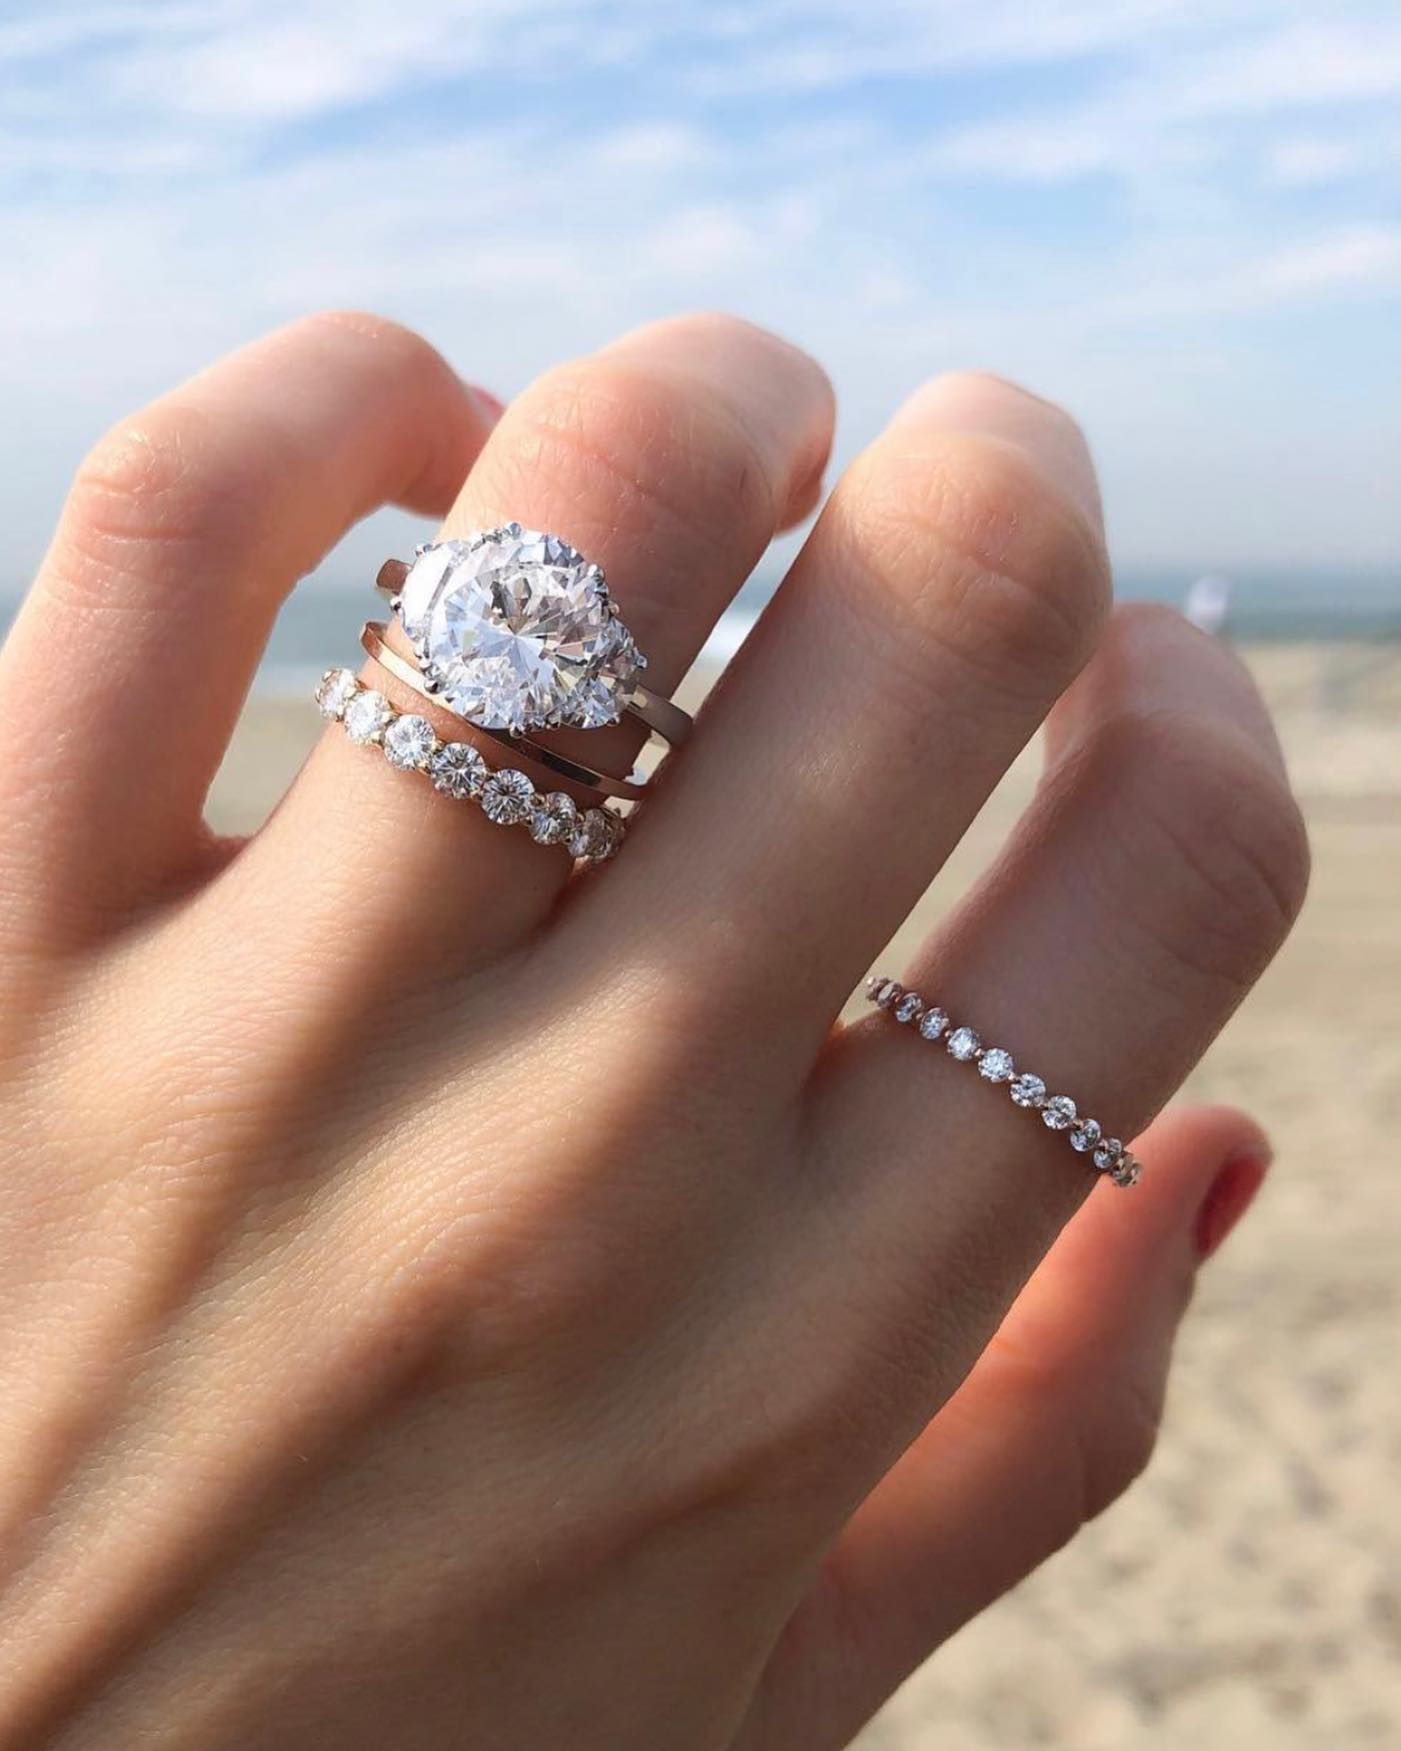 Create Some Space Between Your Engagement Ring Wedding Band Wit Round Diamond Engagement Rings Round Diamond Engagement Rings Solitaire Jewelry Rings Diamond